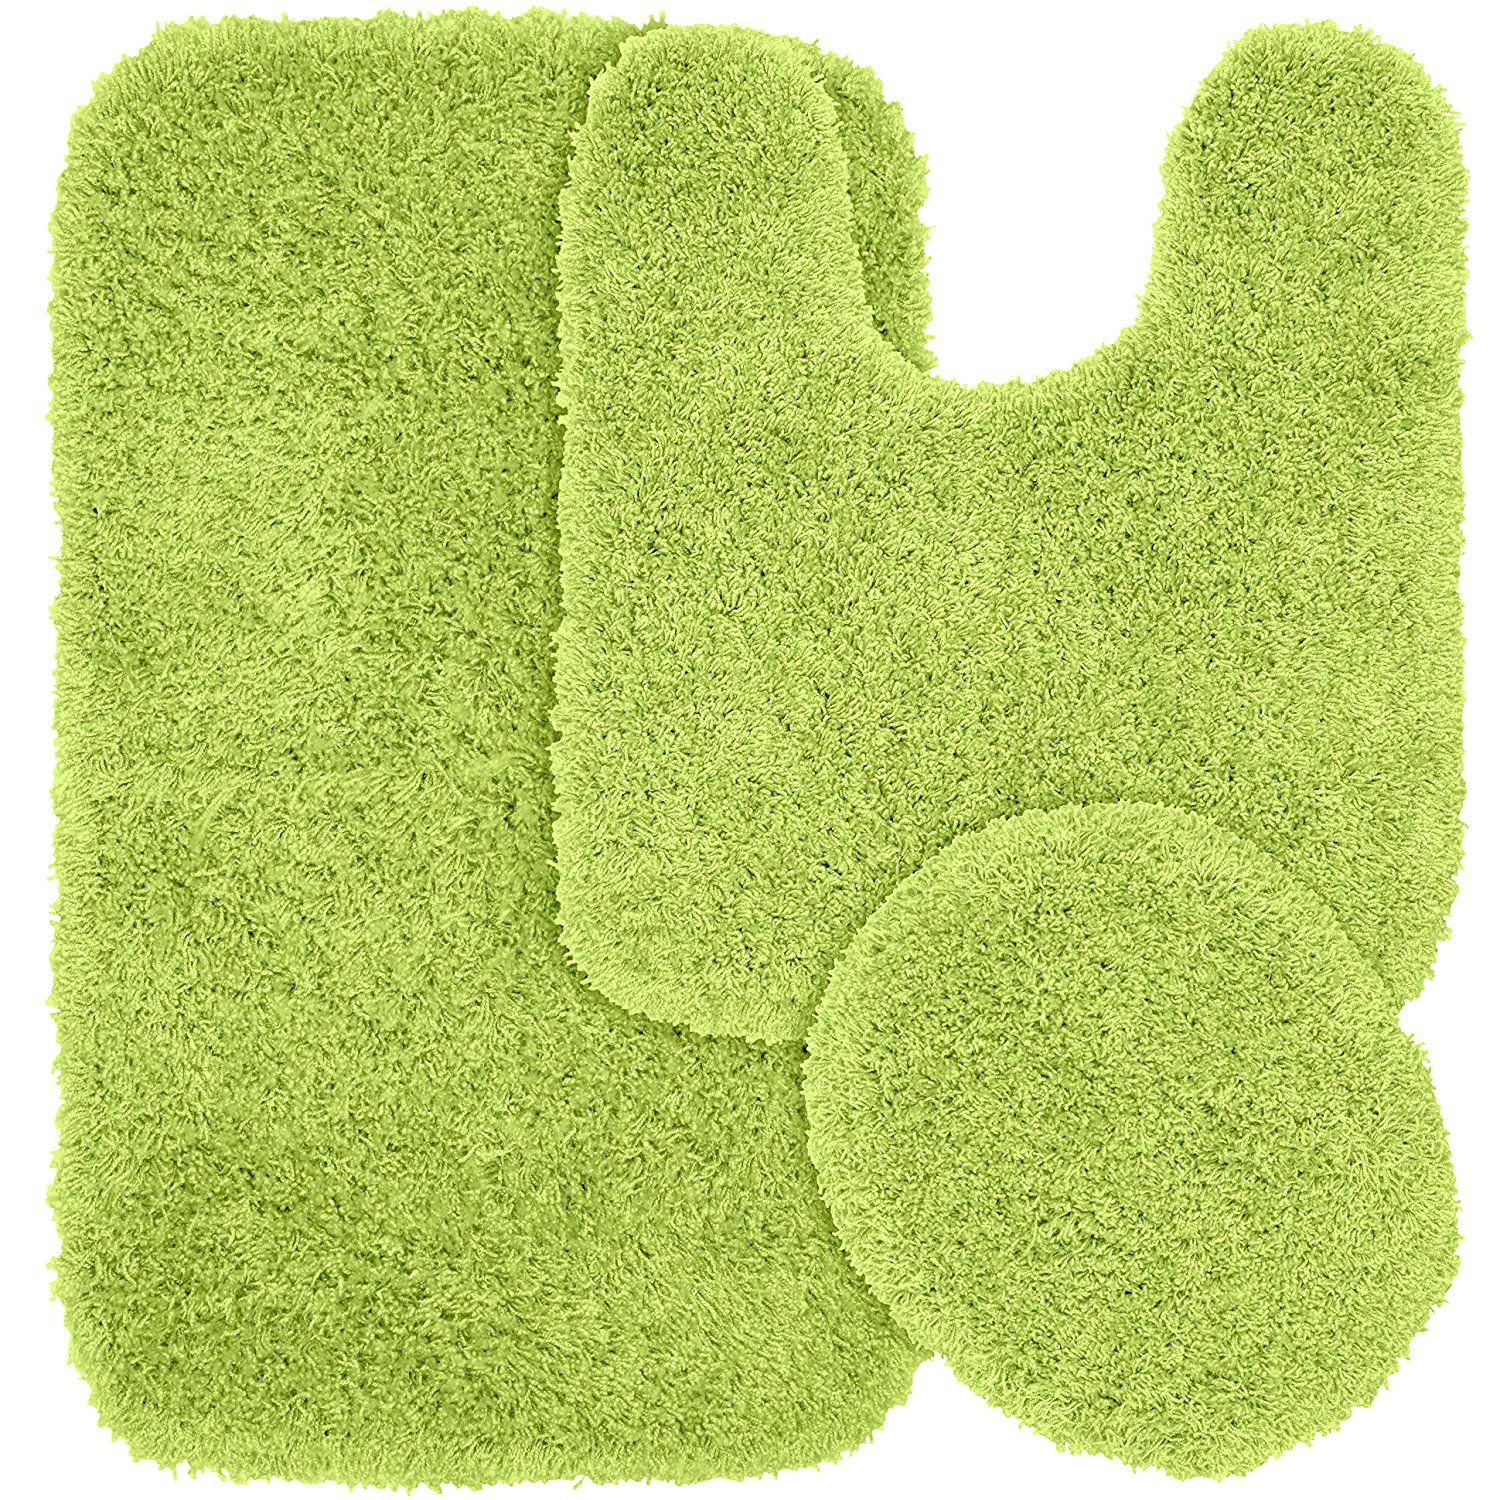 garland rug 3 piece jazz shaggy washable nylon bathroom rug set rh pinterest co uk green bathroom rugs walmart green bathroom rugs at target